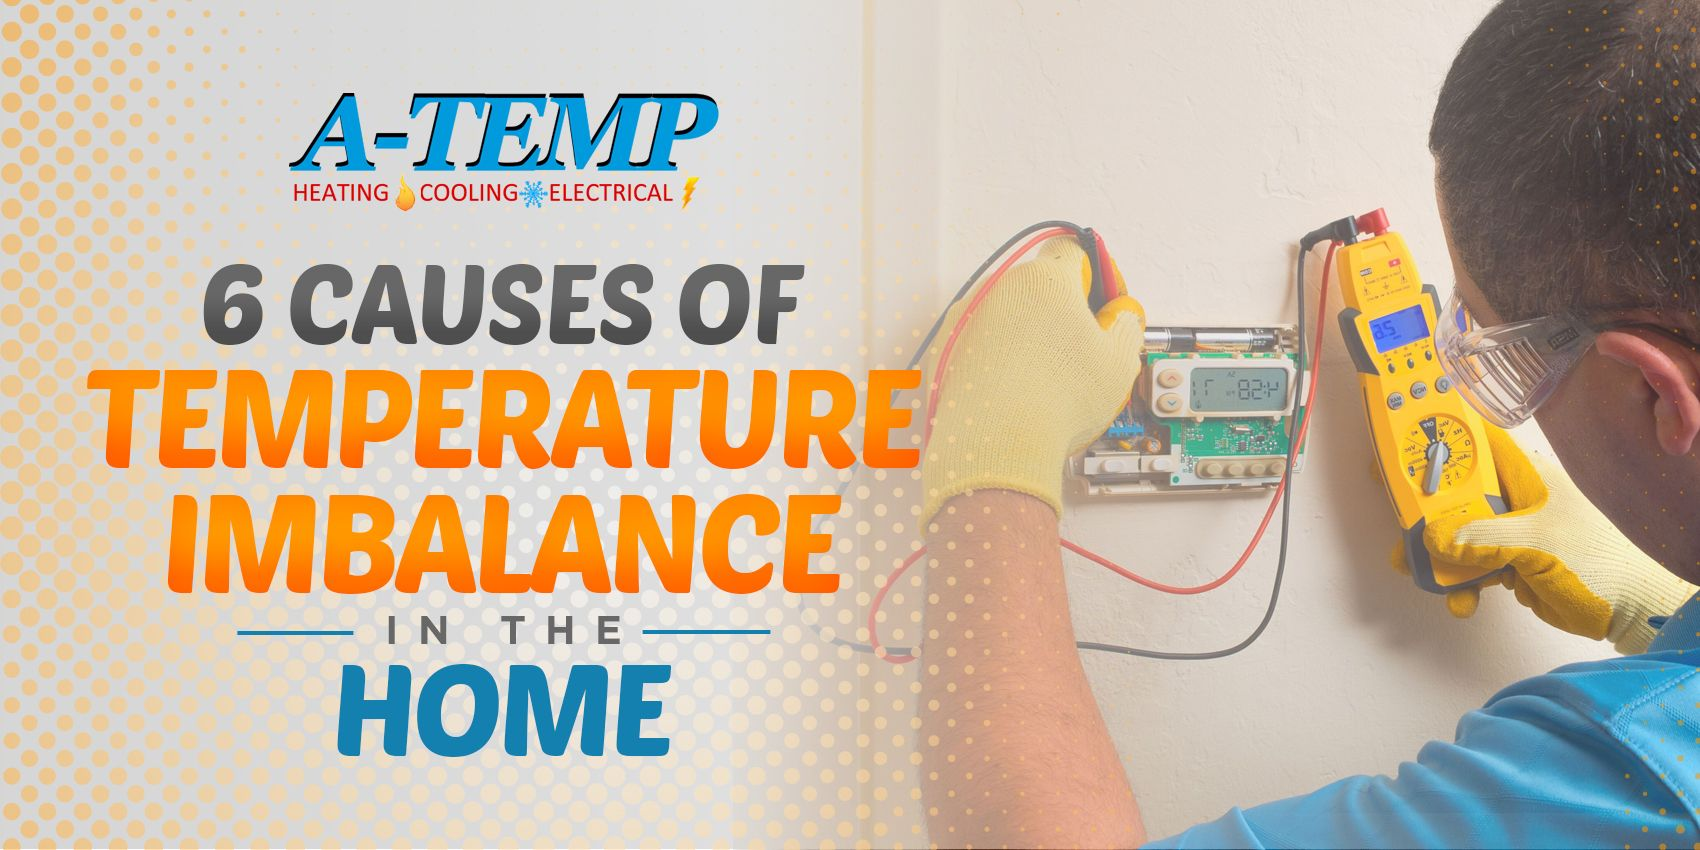 6 Causes Of Temperature Imbalance In The Home